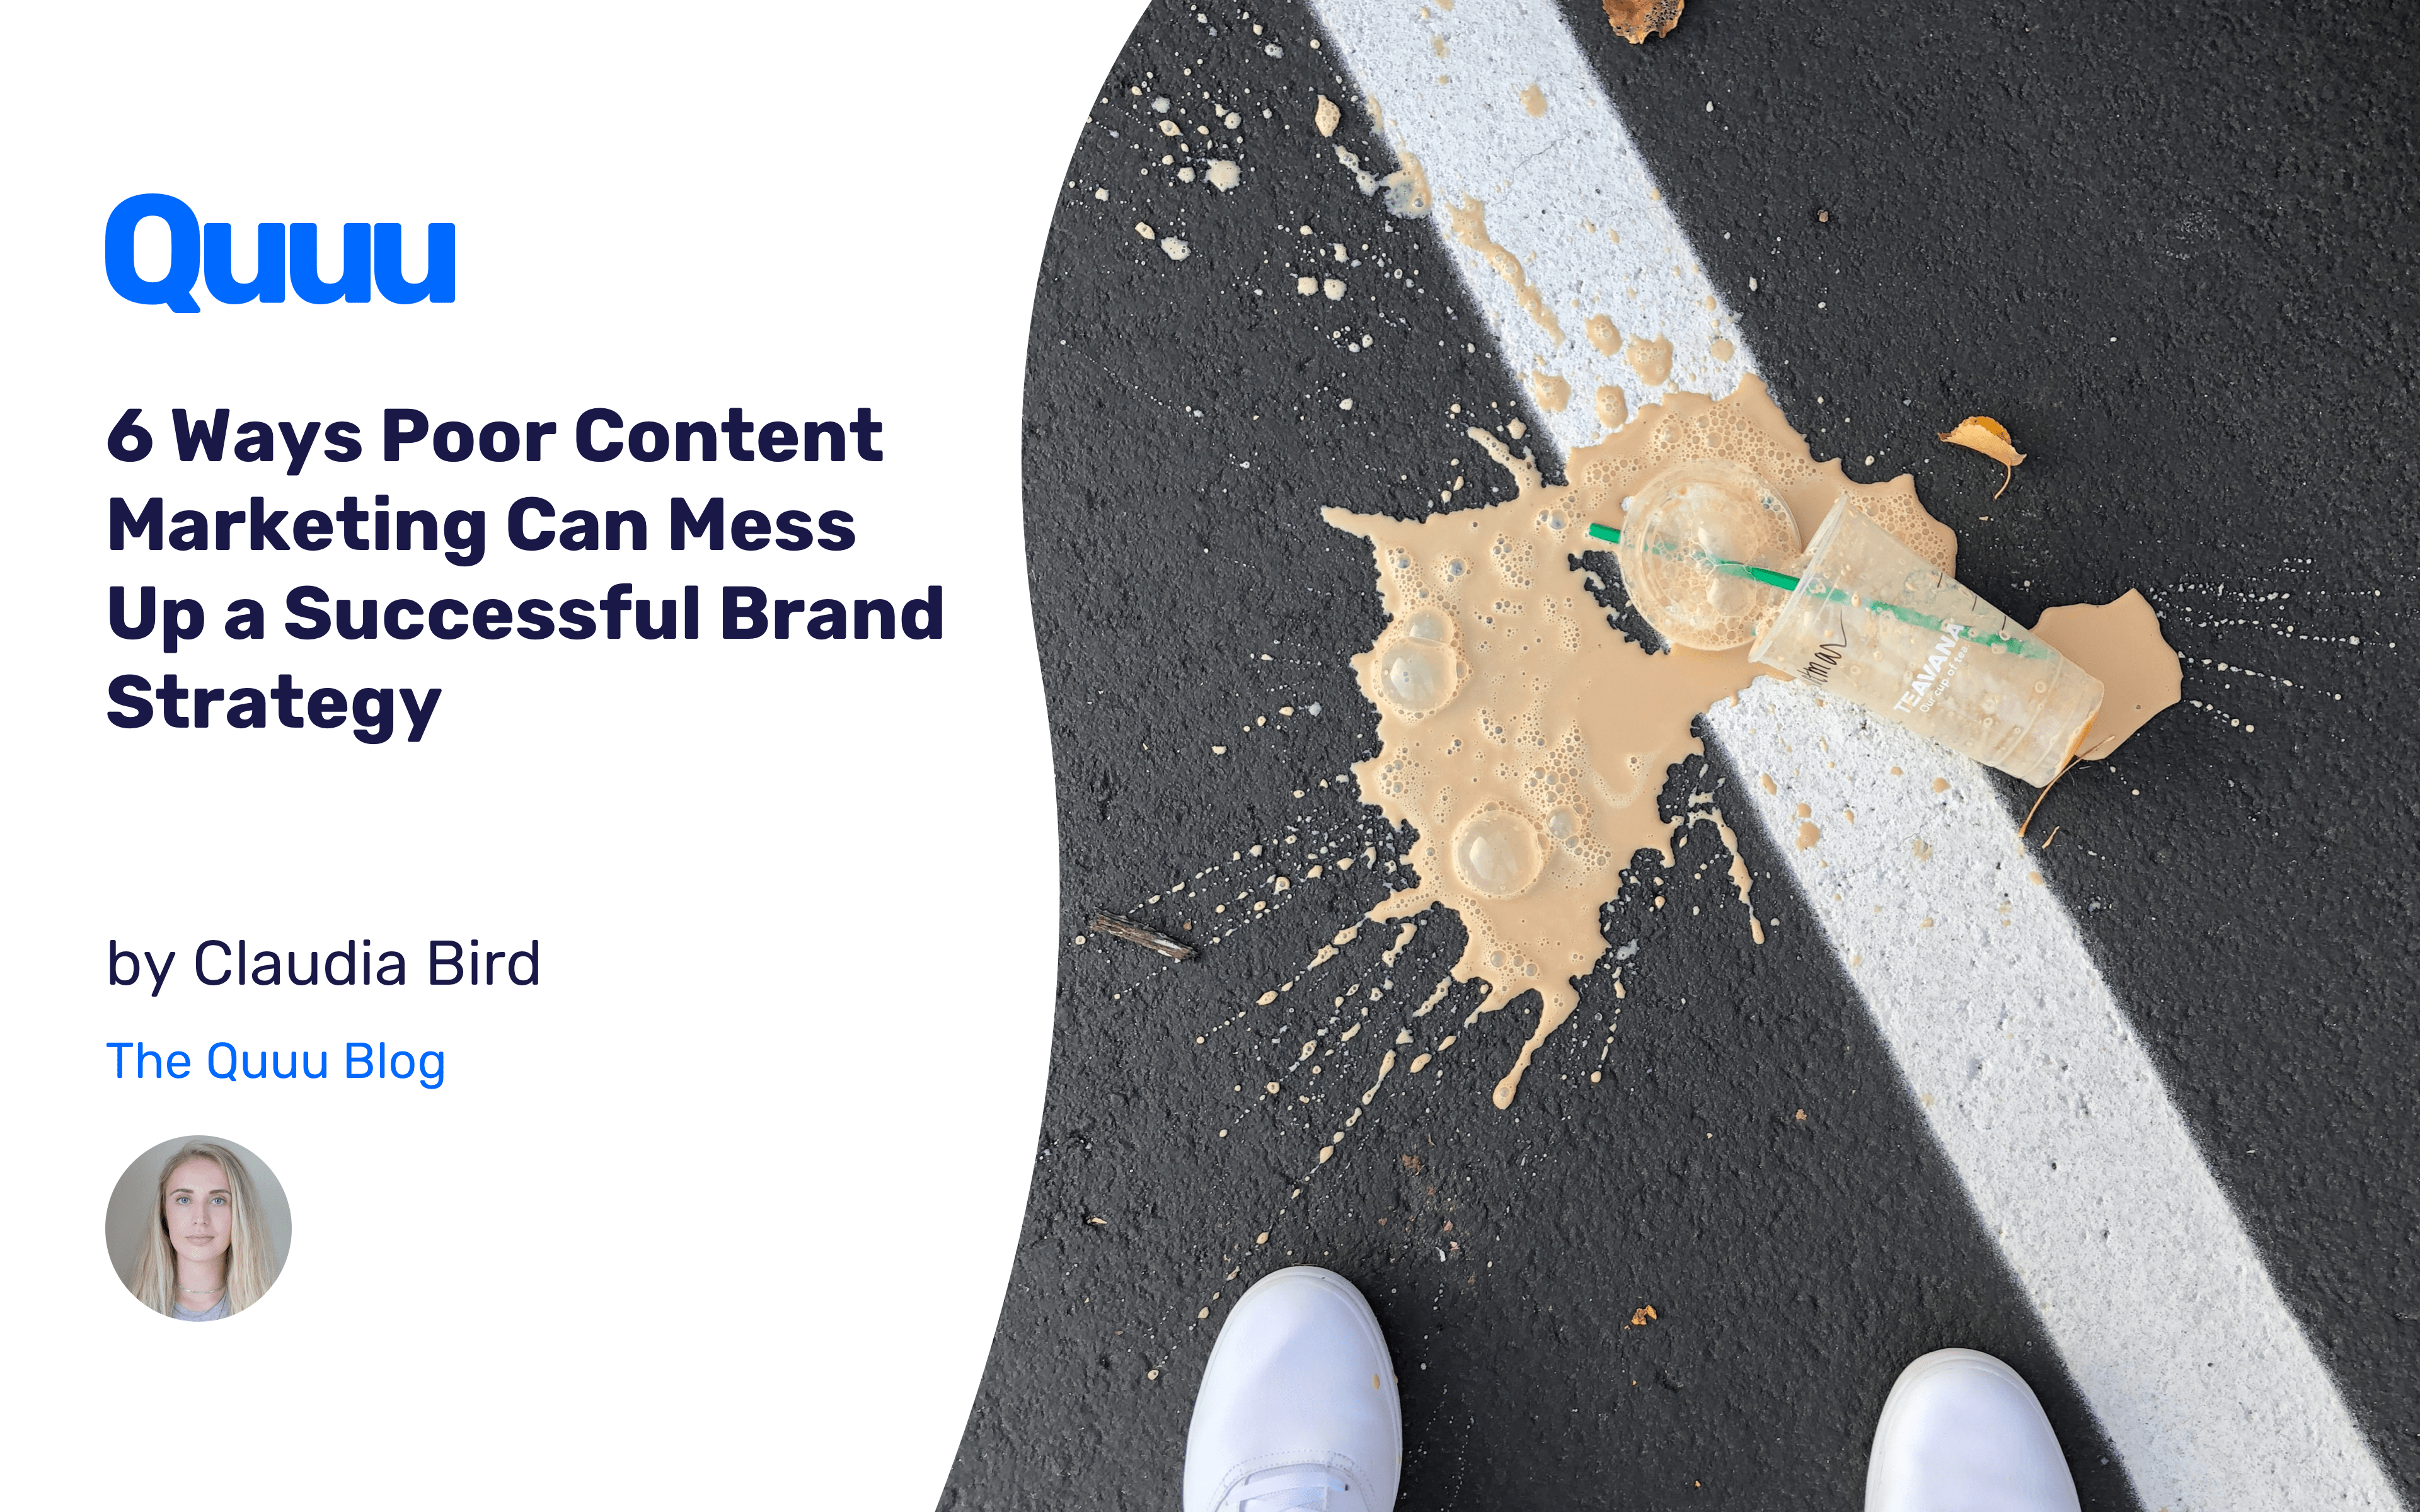 6 Ways Poor Content Marketing Can Mess Up a Successful Brand Strategy